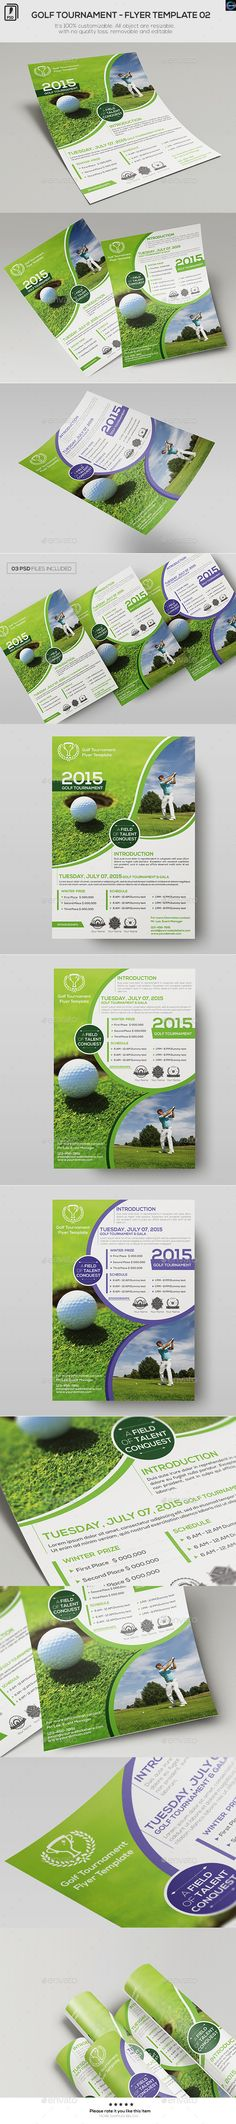 golf tournament flyer template no model required download the full psd flyer here http. Black Bedroom Furniture Sets. Home Design Ideas